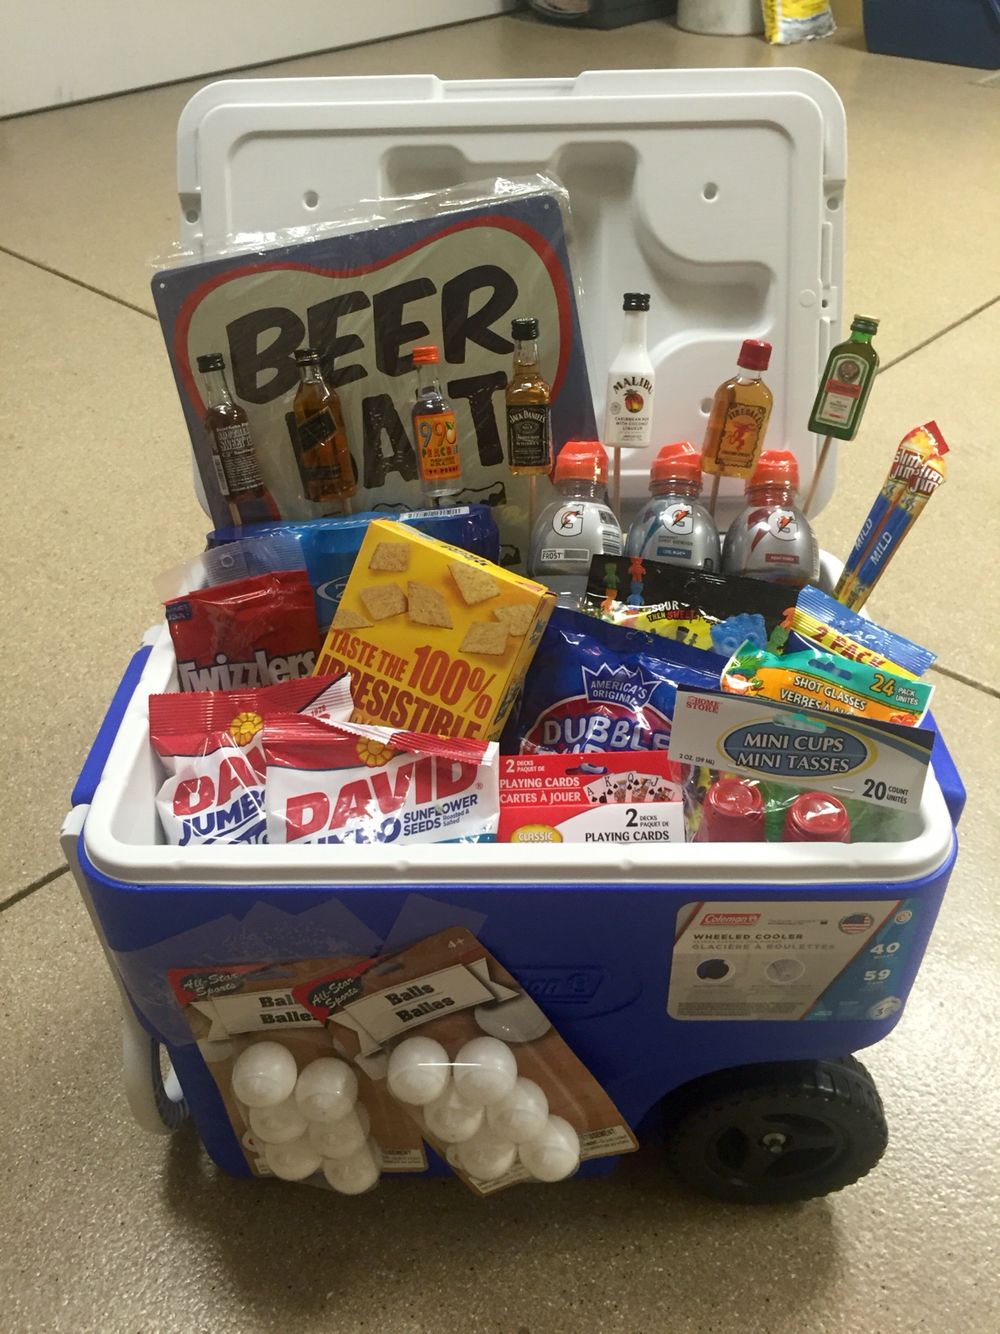 Ice Chest Gift Basket 21st Birthday For A Guy With Images